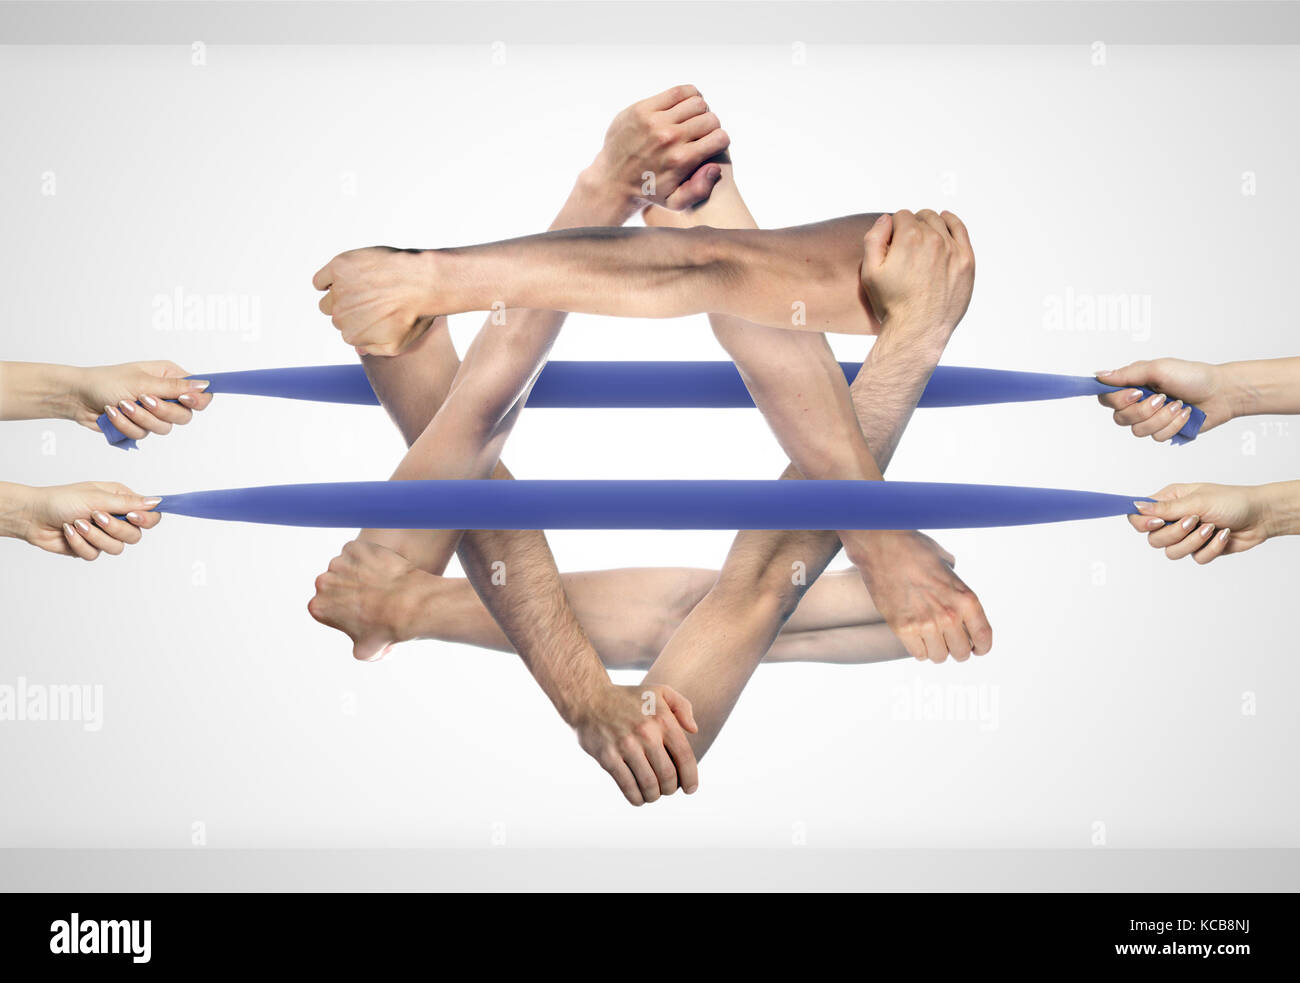 Israeli flag or Star of David made of holding hands - Stock Image